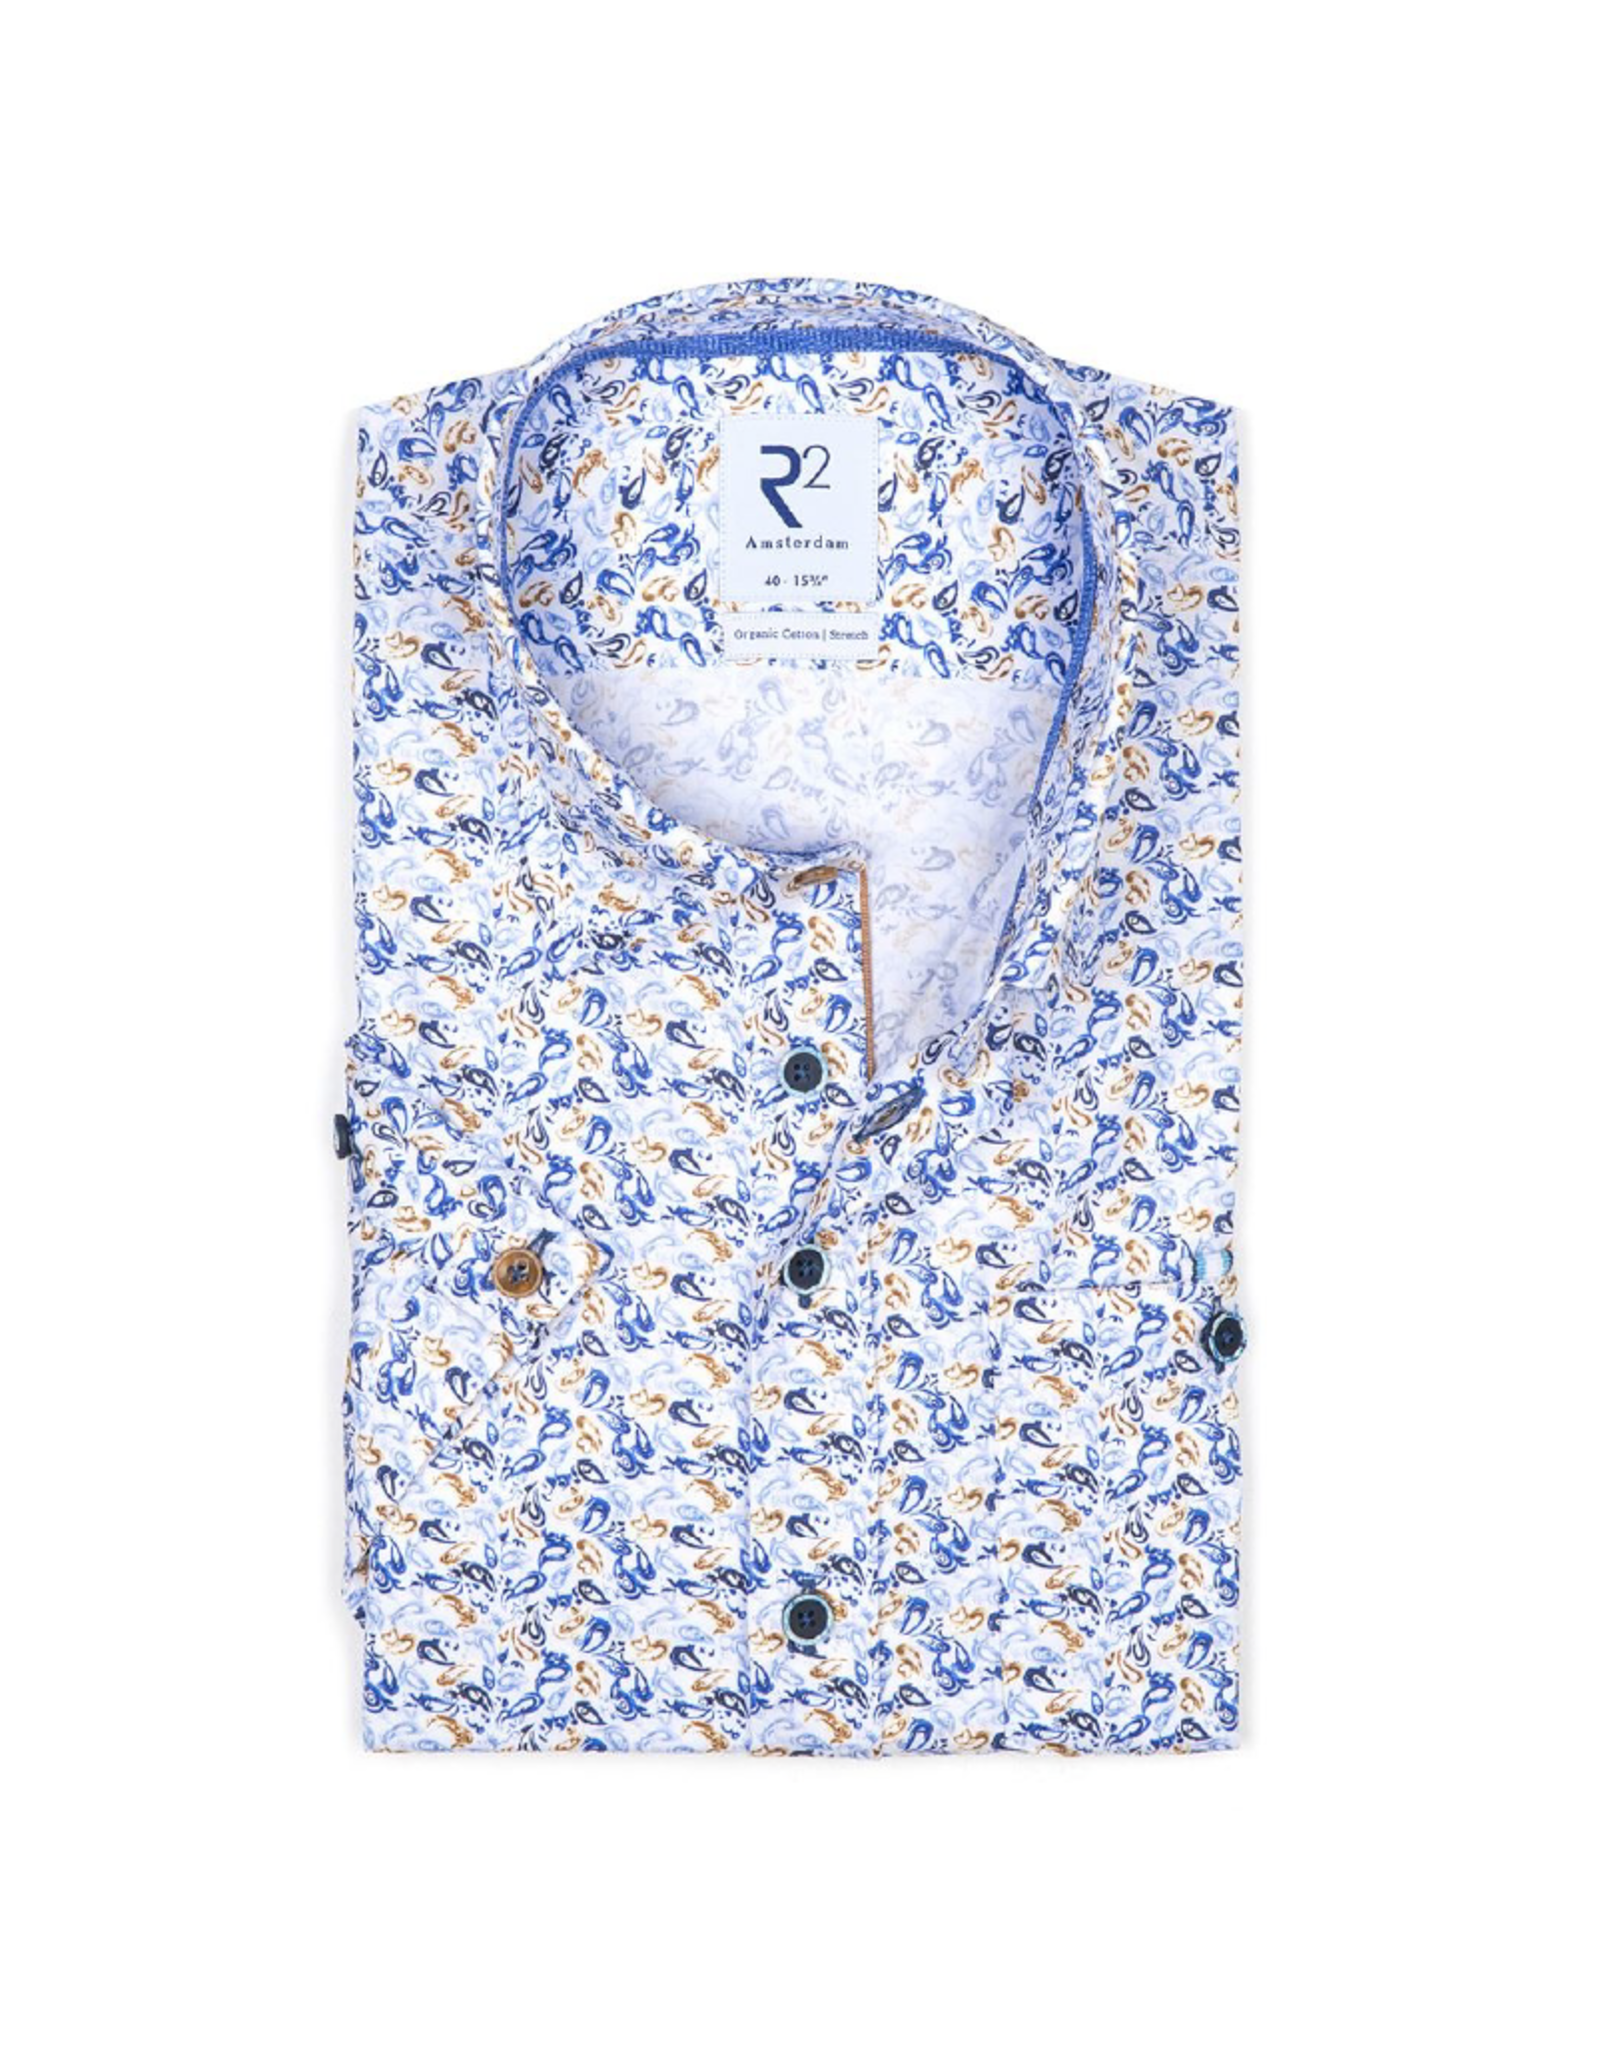 R2 Paisley Short-Sleeve Button Up